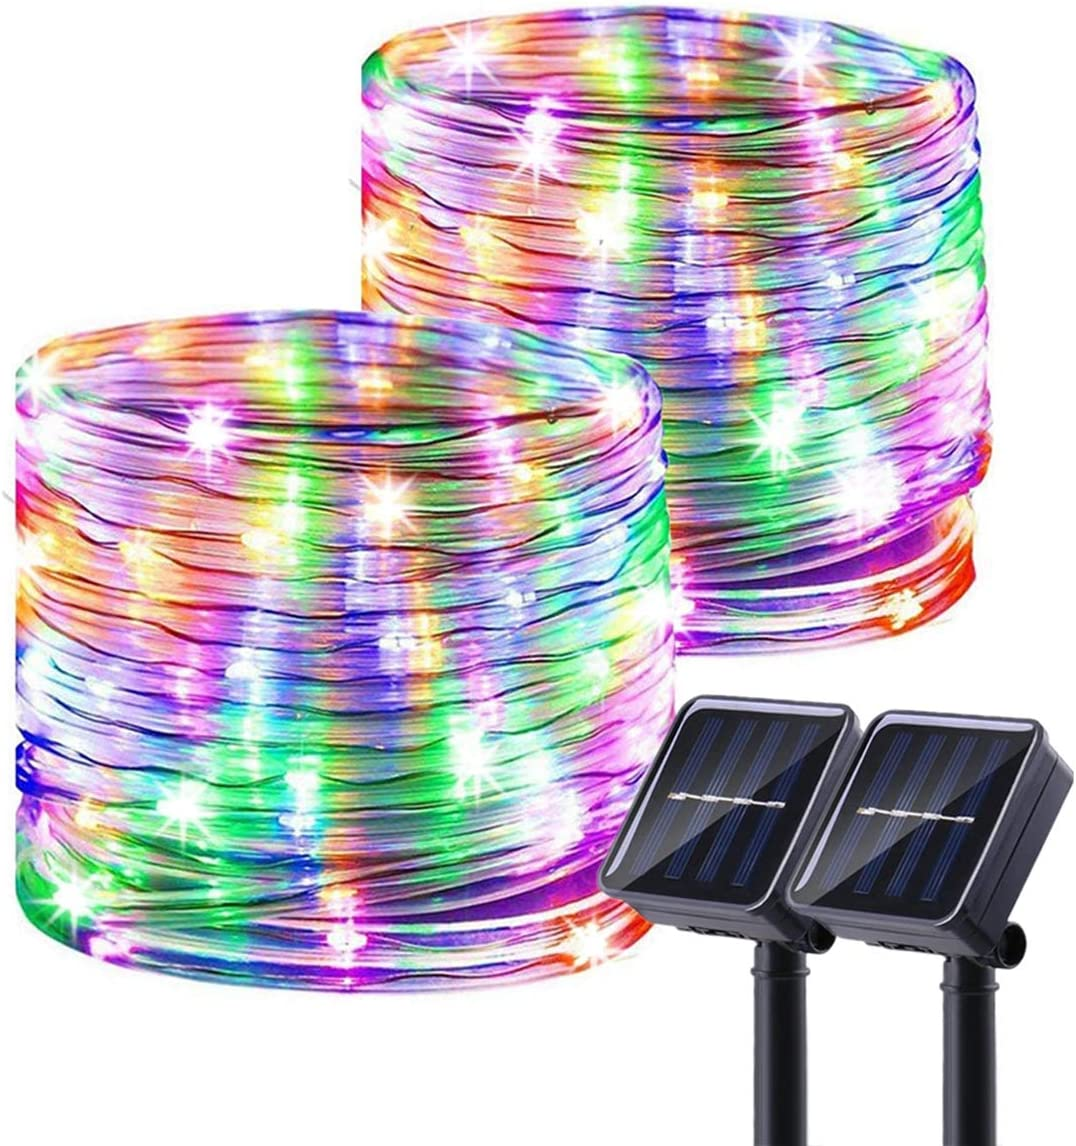 Chinety Solar String Lights Outdoor, 2 Pack 100 LED Solar Rope Lights 8 Modes Copper Wire Fairy Lights Waterproof Outdoor PVC Tube String Lights for Garden Fence Yard Summer Party Decor Multi Color